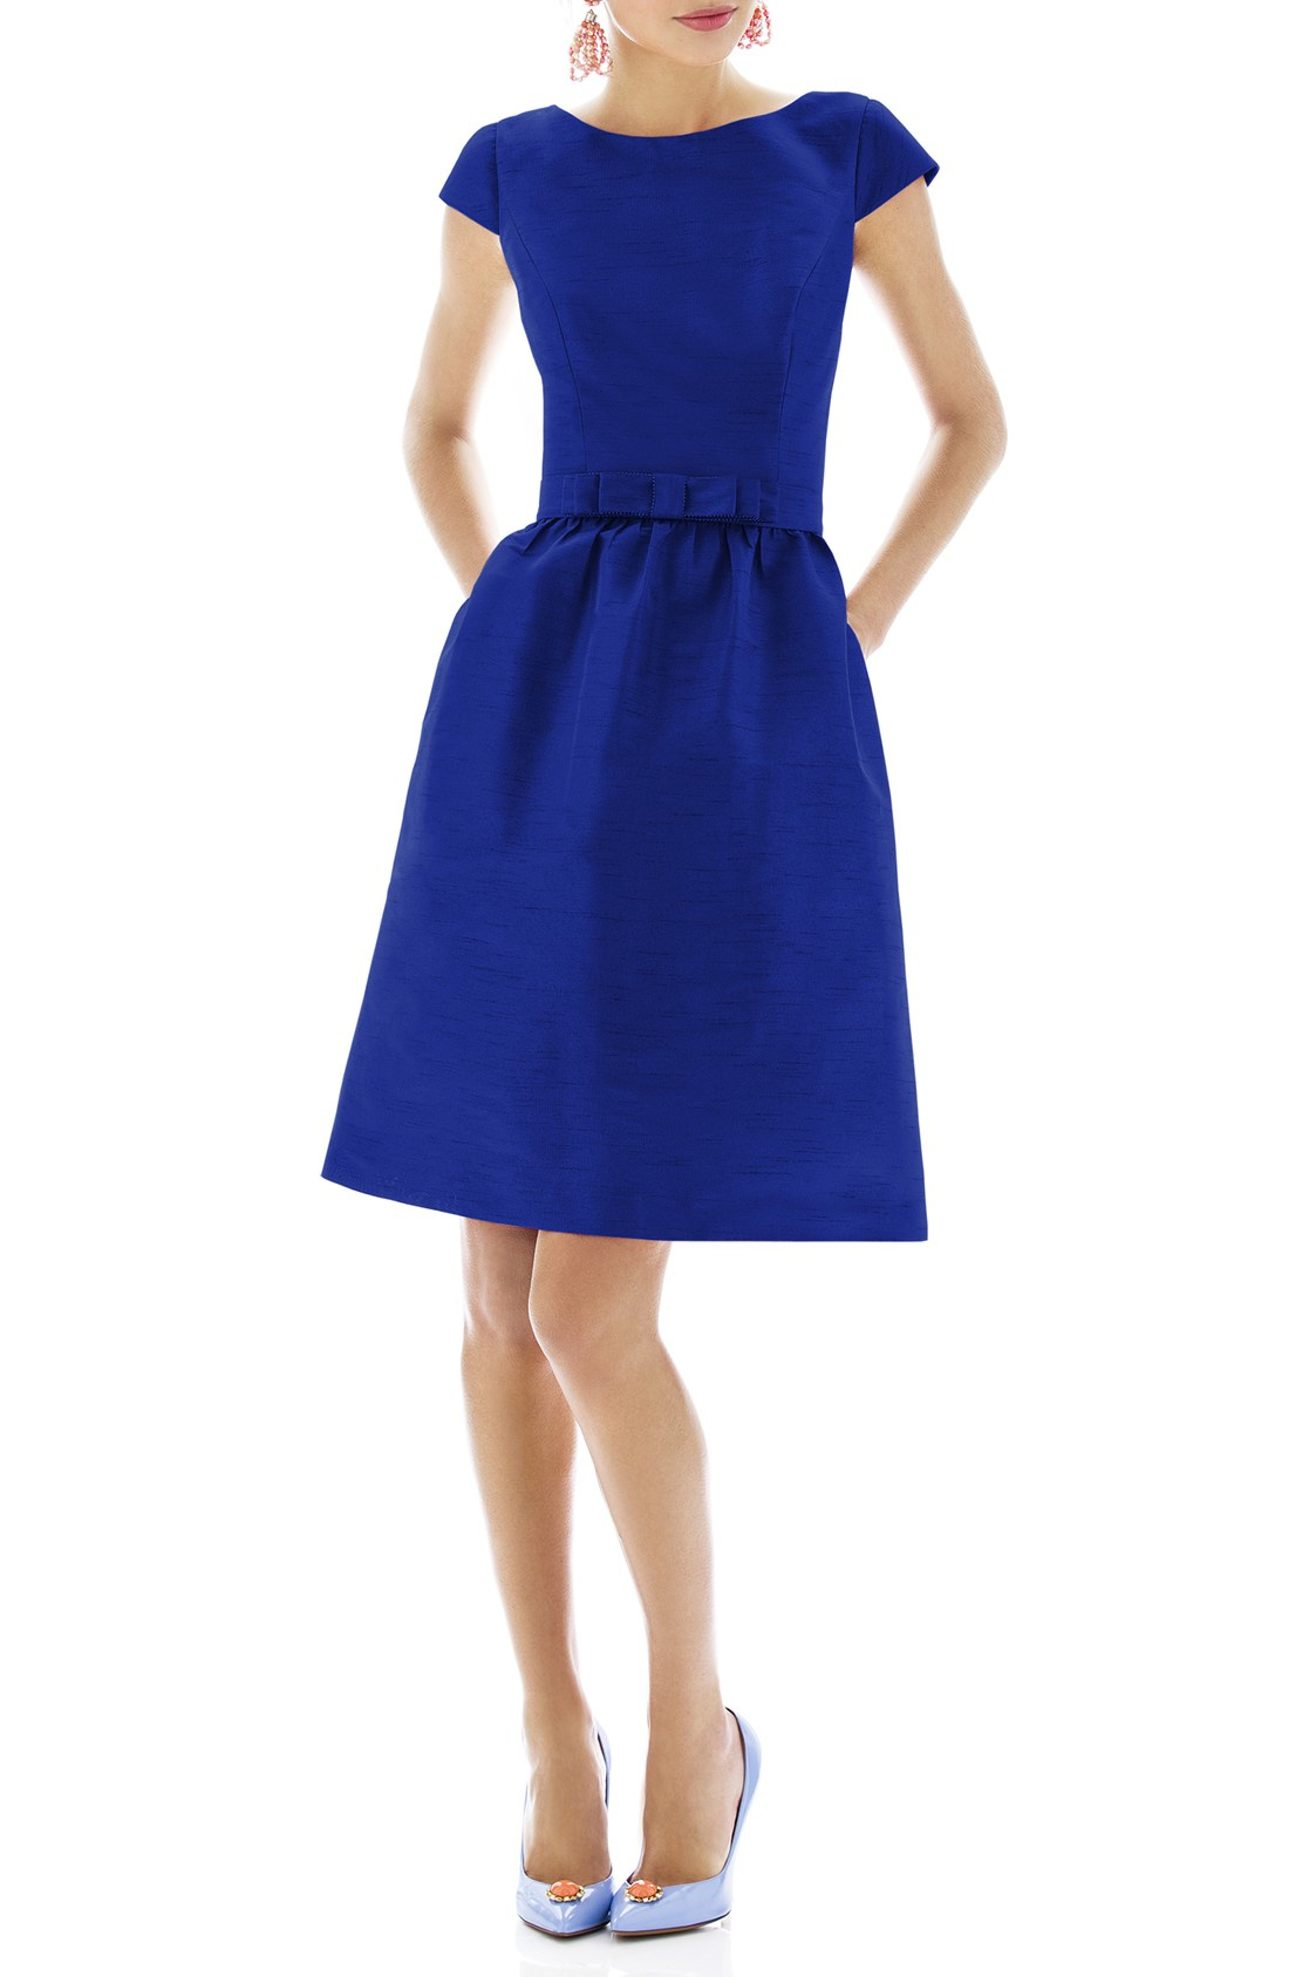 Alfred Sung. Woven Fit & Flare Dress - $198.00–$238.00. (Image: Nordstrom)